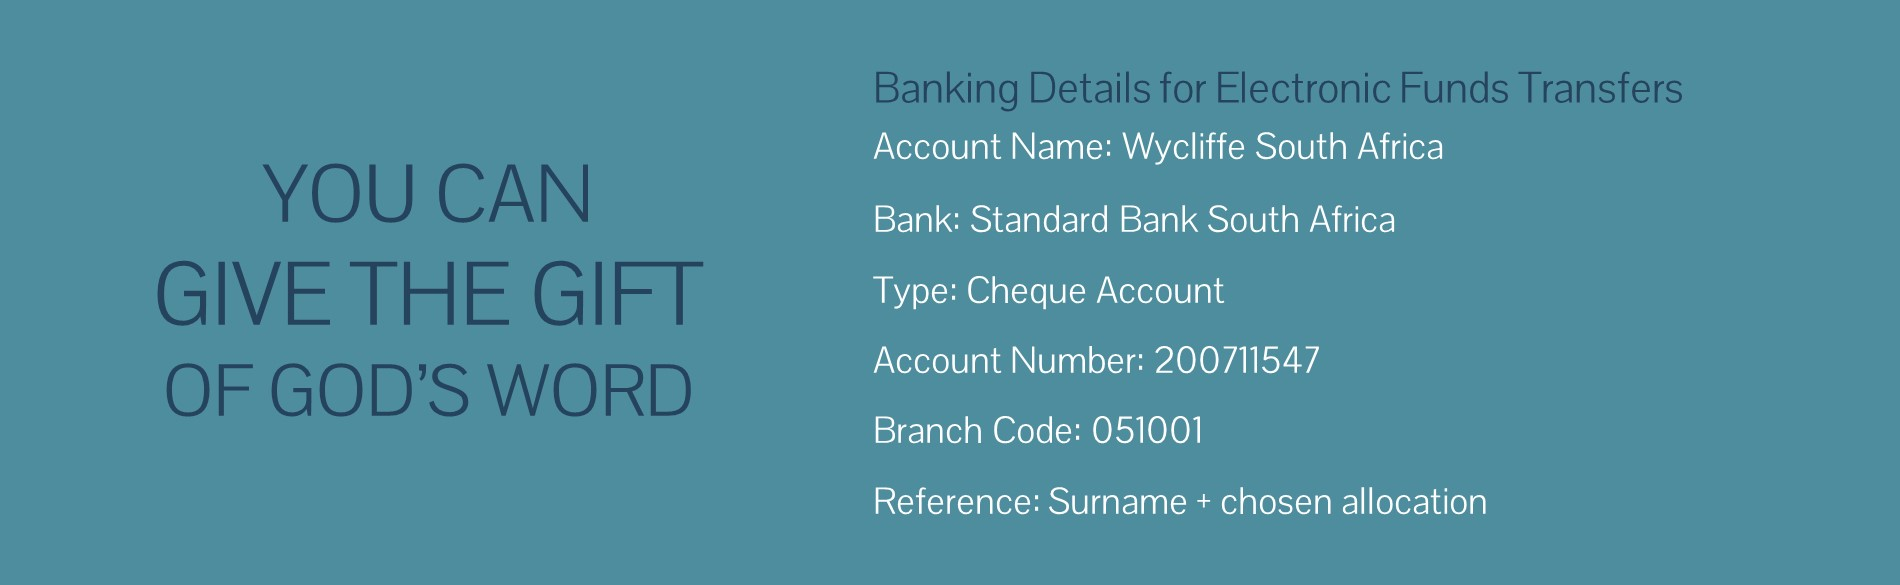 Wycliffe Banking Details